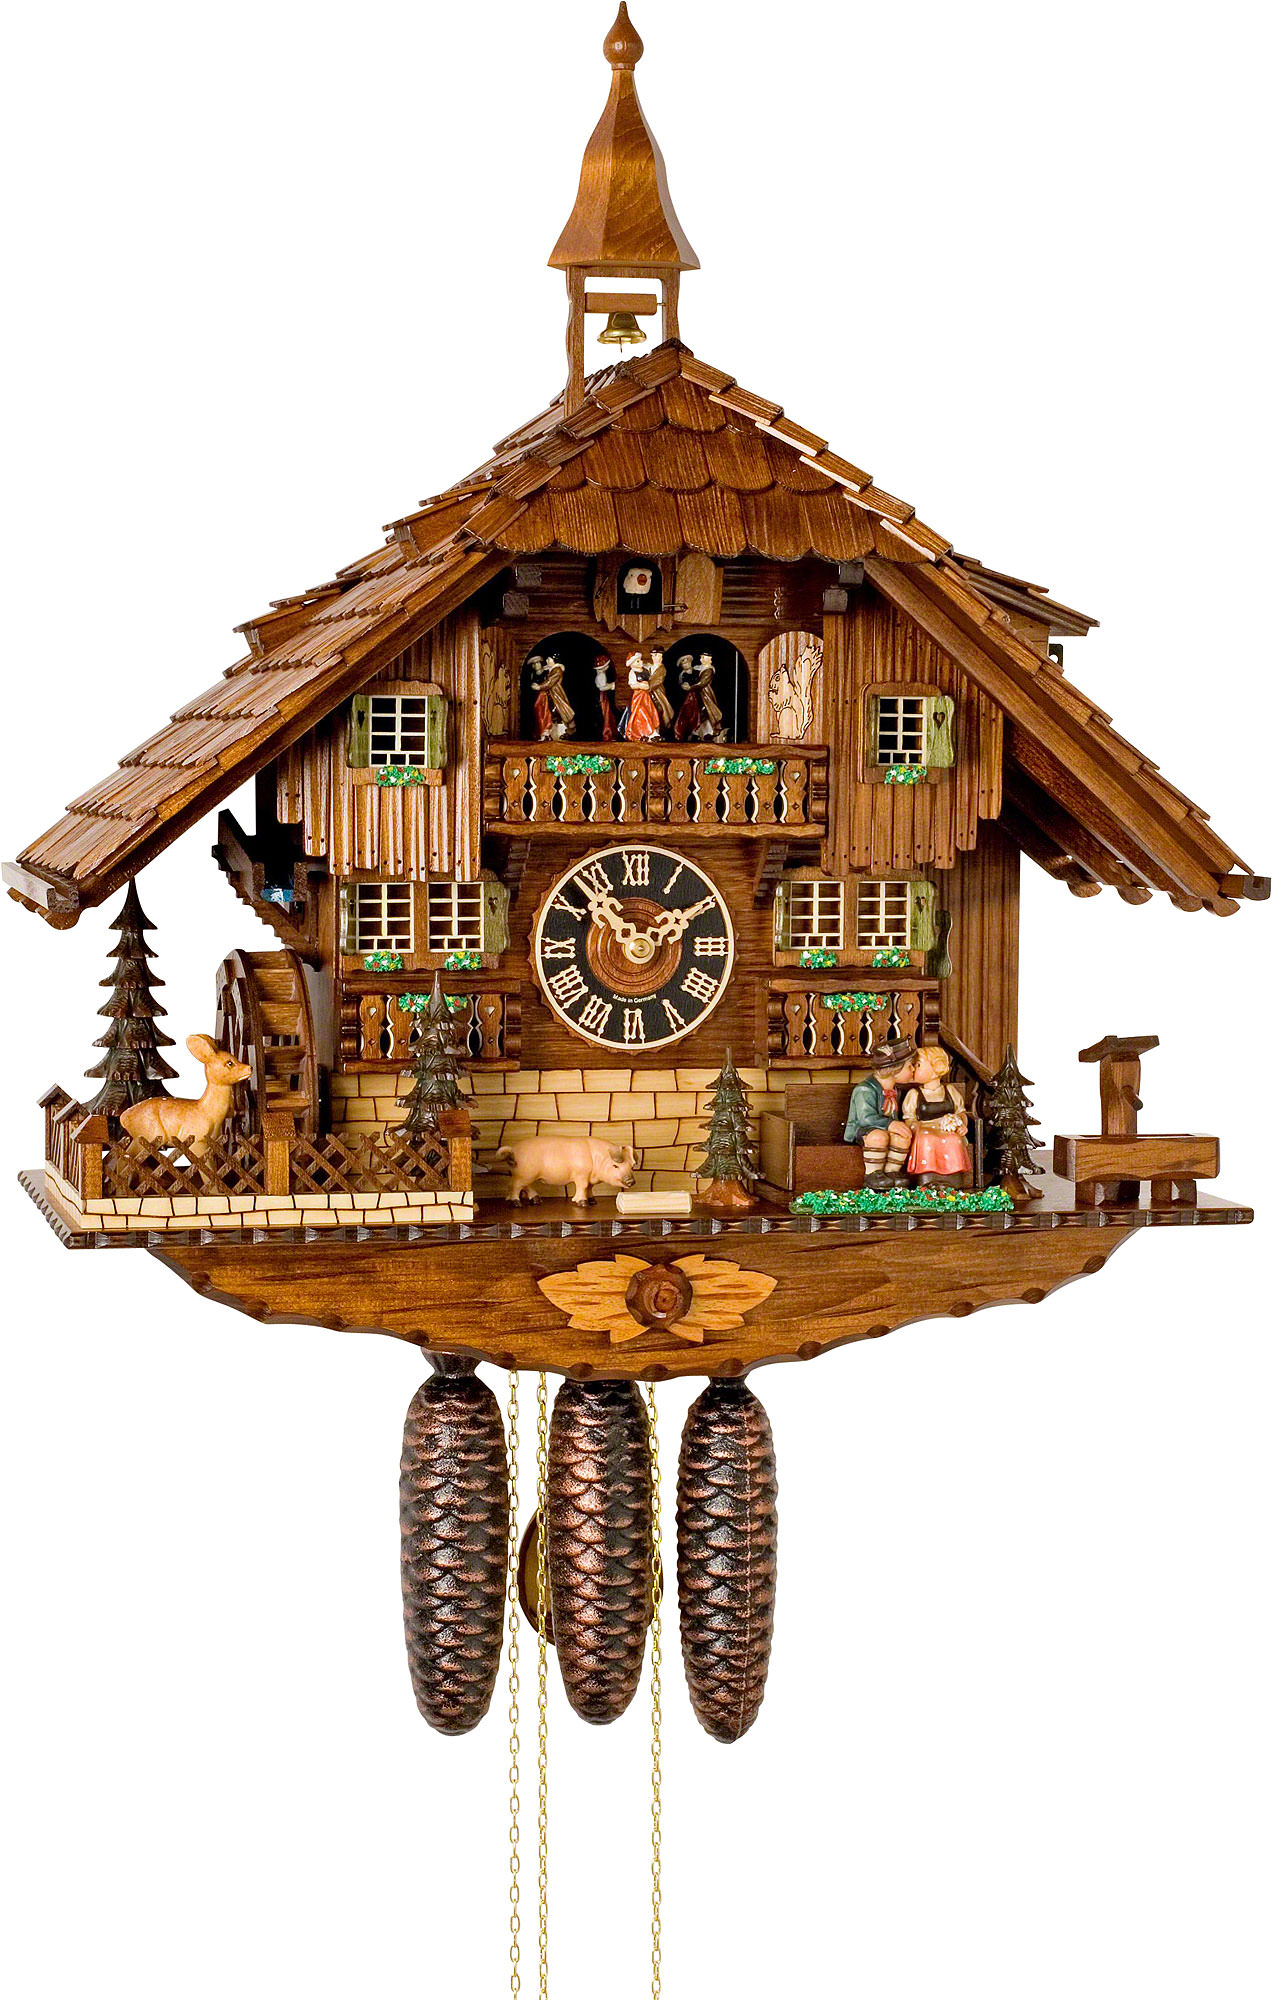 cuckoo clock 8 day movement chalet style 58cm by hönes 8638t